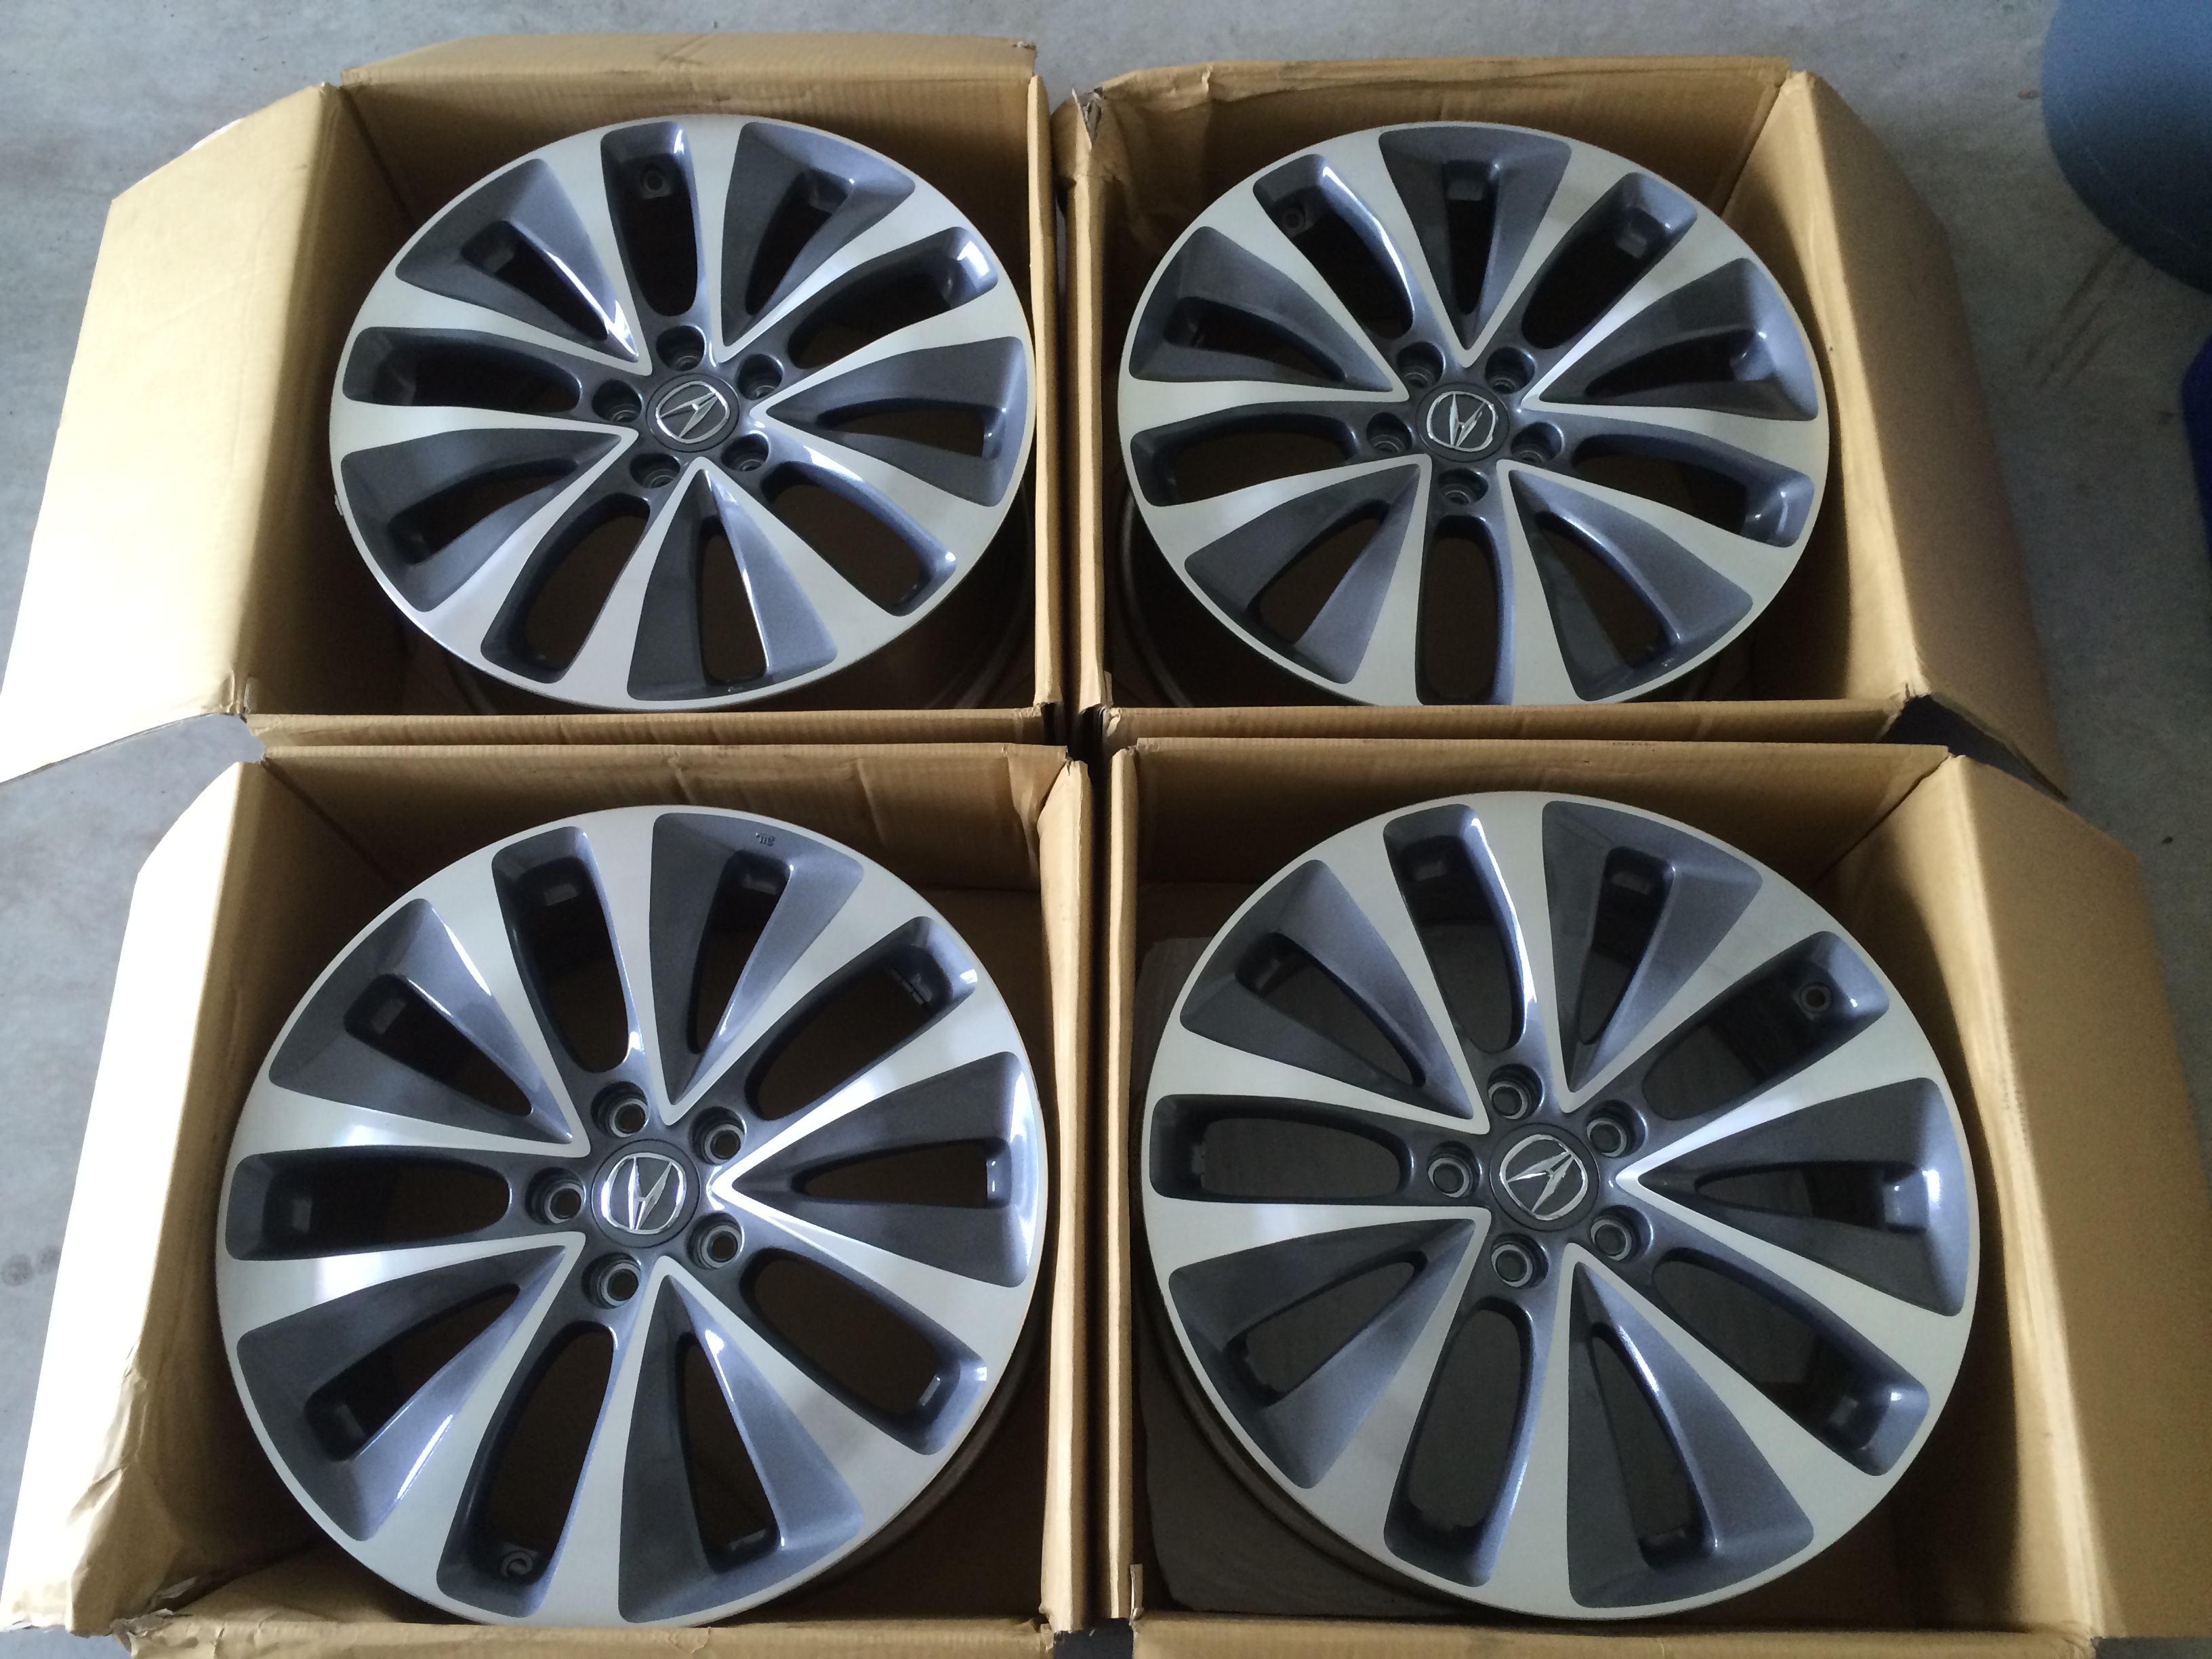 Acura MDX OEM Wheels Acura MDX Forum Acura MDX SUV Forums - Acura mdx oem wheels